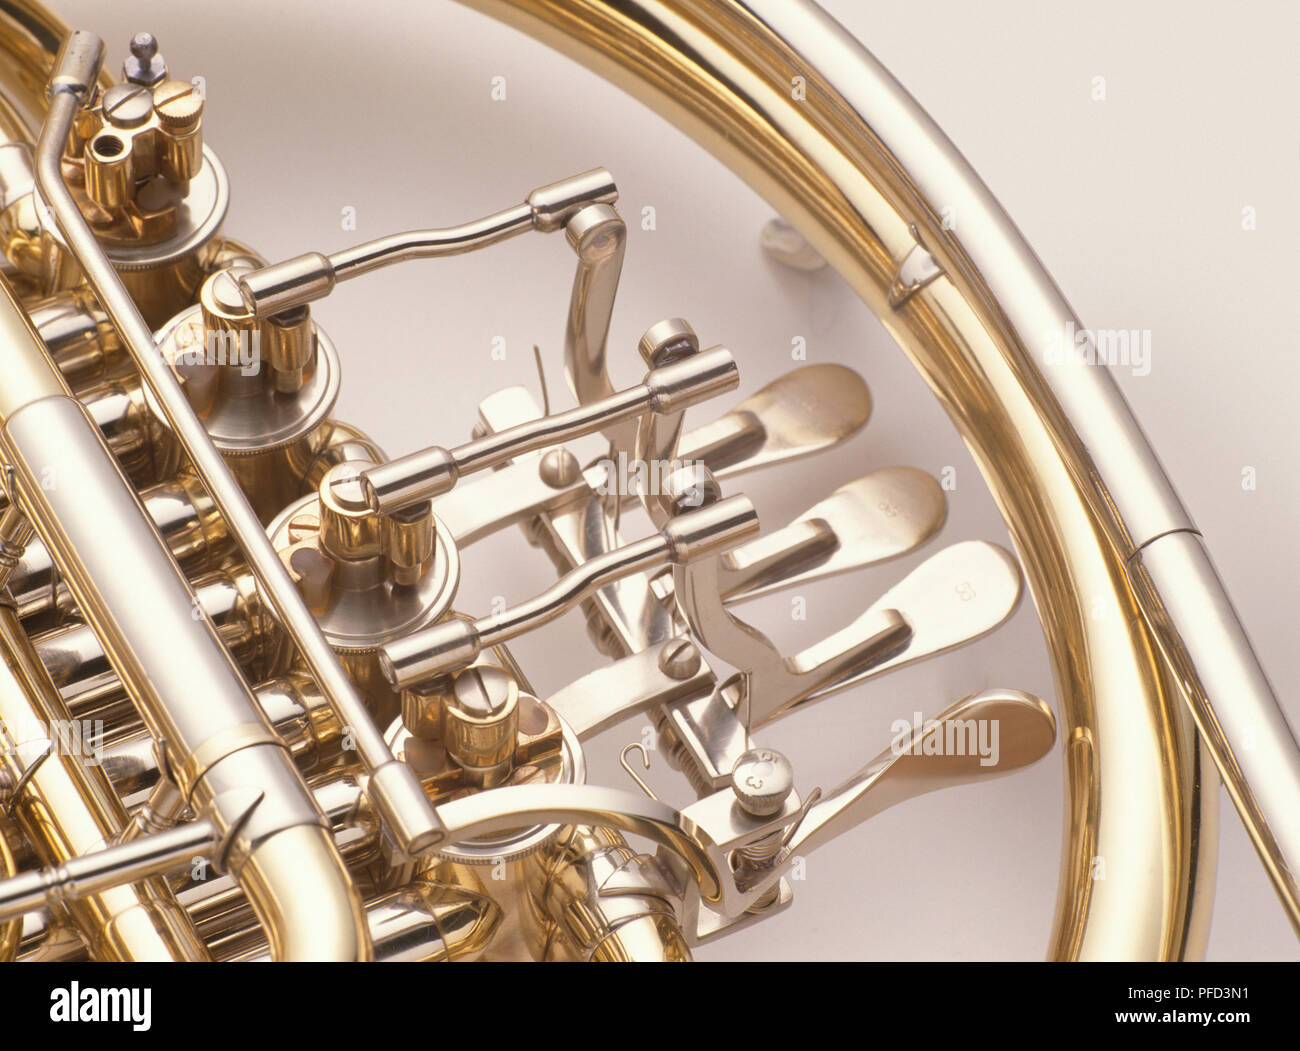 """12 Gold Tone Metal Musical FRENCH HORN BUTTONS Shank End 5//8/"""""""